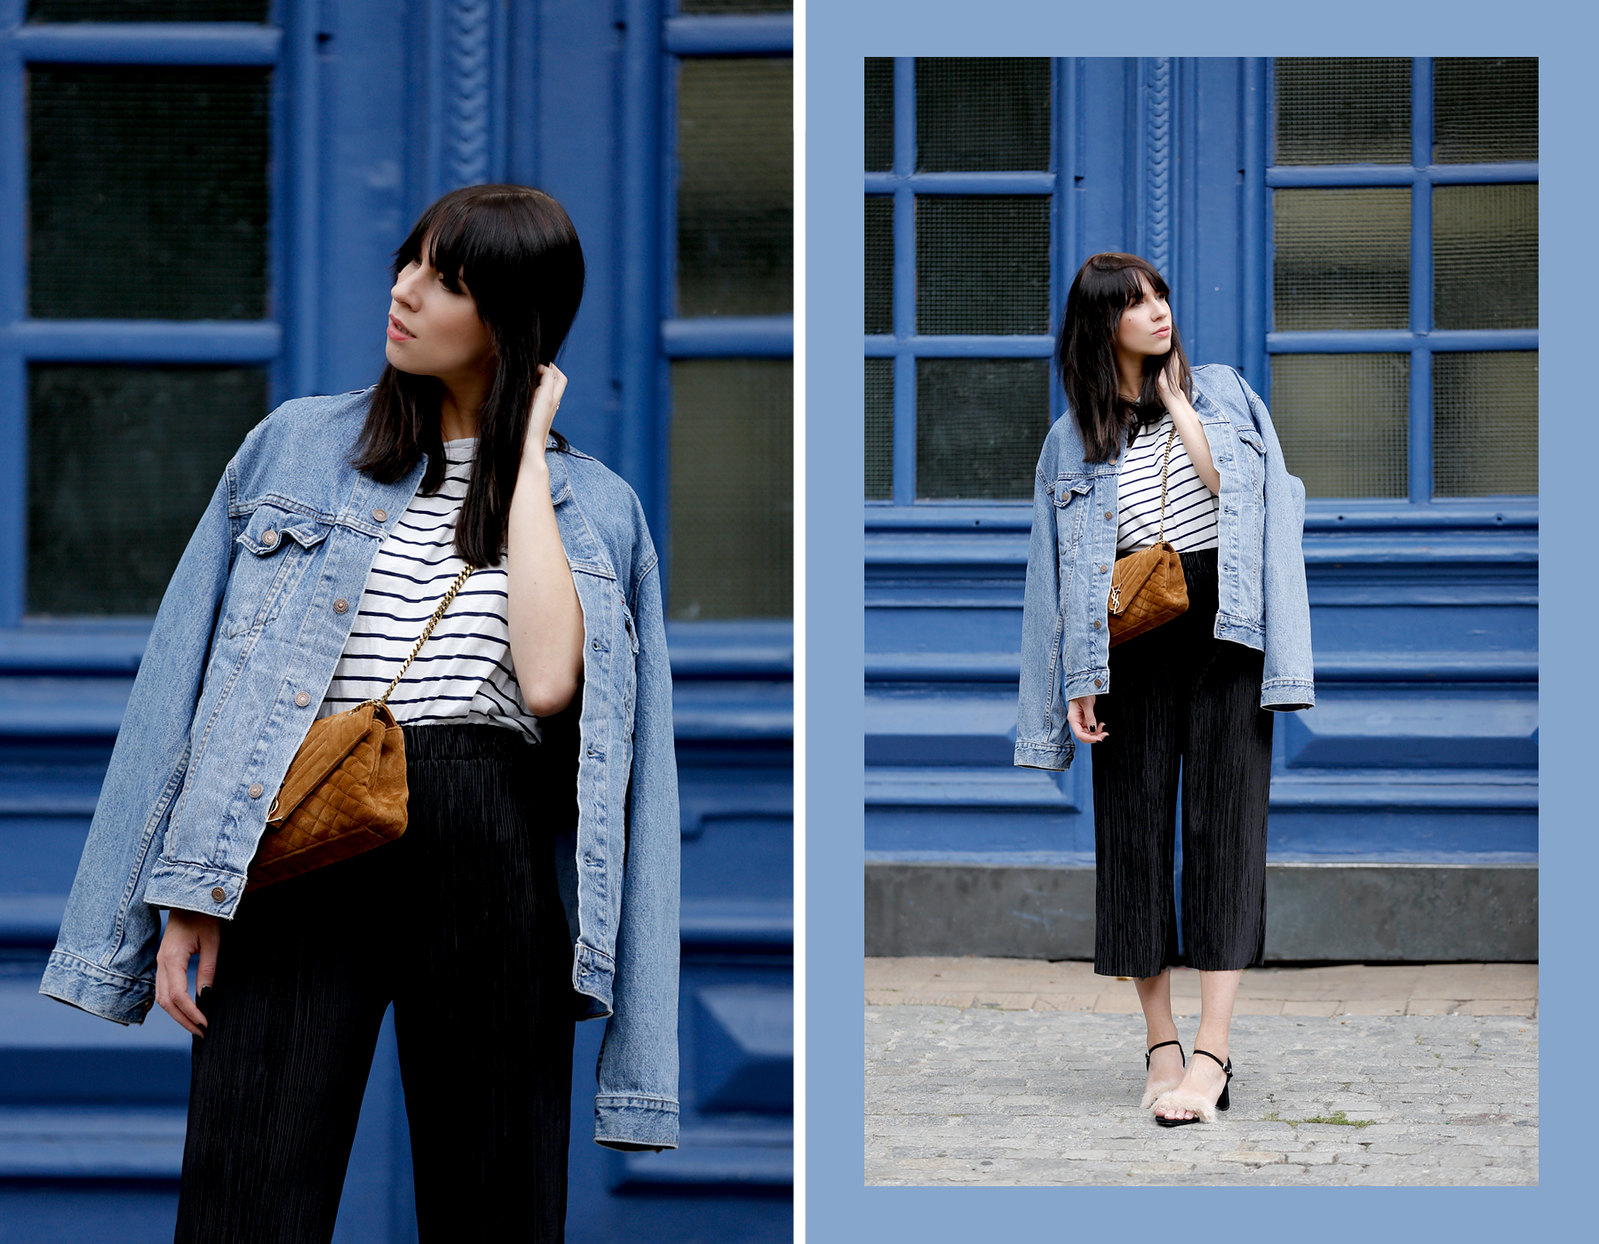 ootd outfit look lookbook denim style stripes ysl brown suede bag plissee pants zara furry sandals cats & dogs fashionblog ricarda schernus modeblogger germany berlin 6